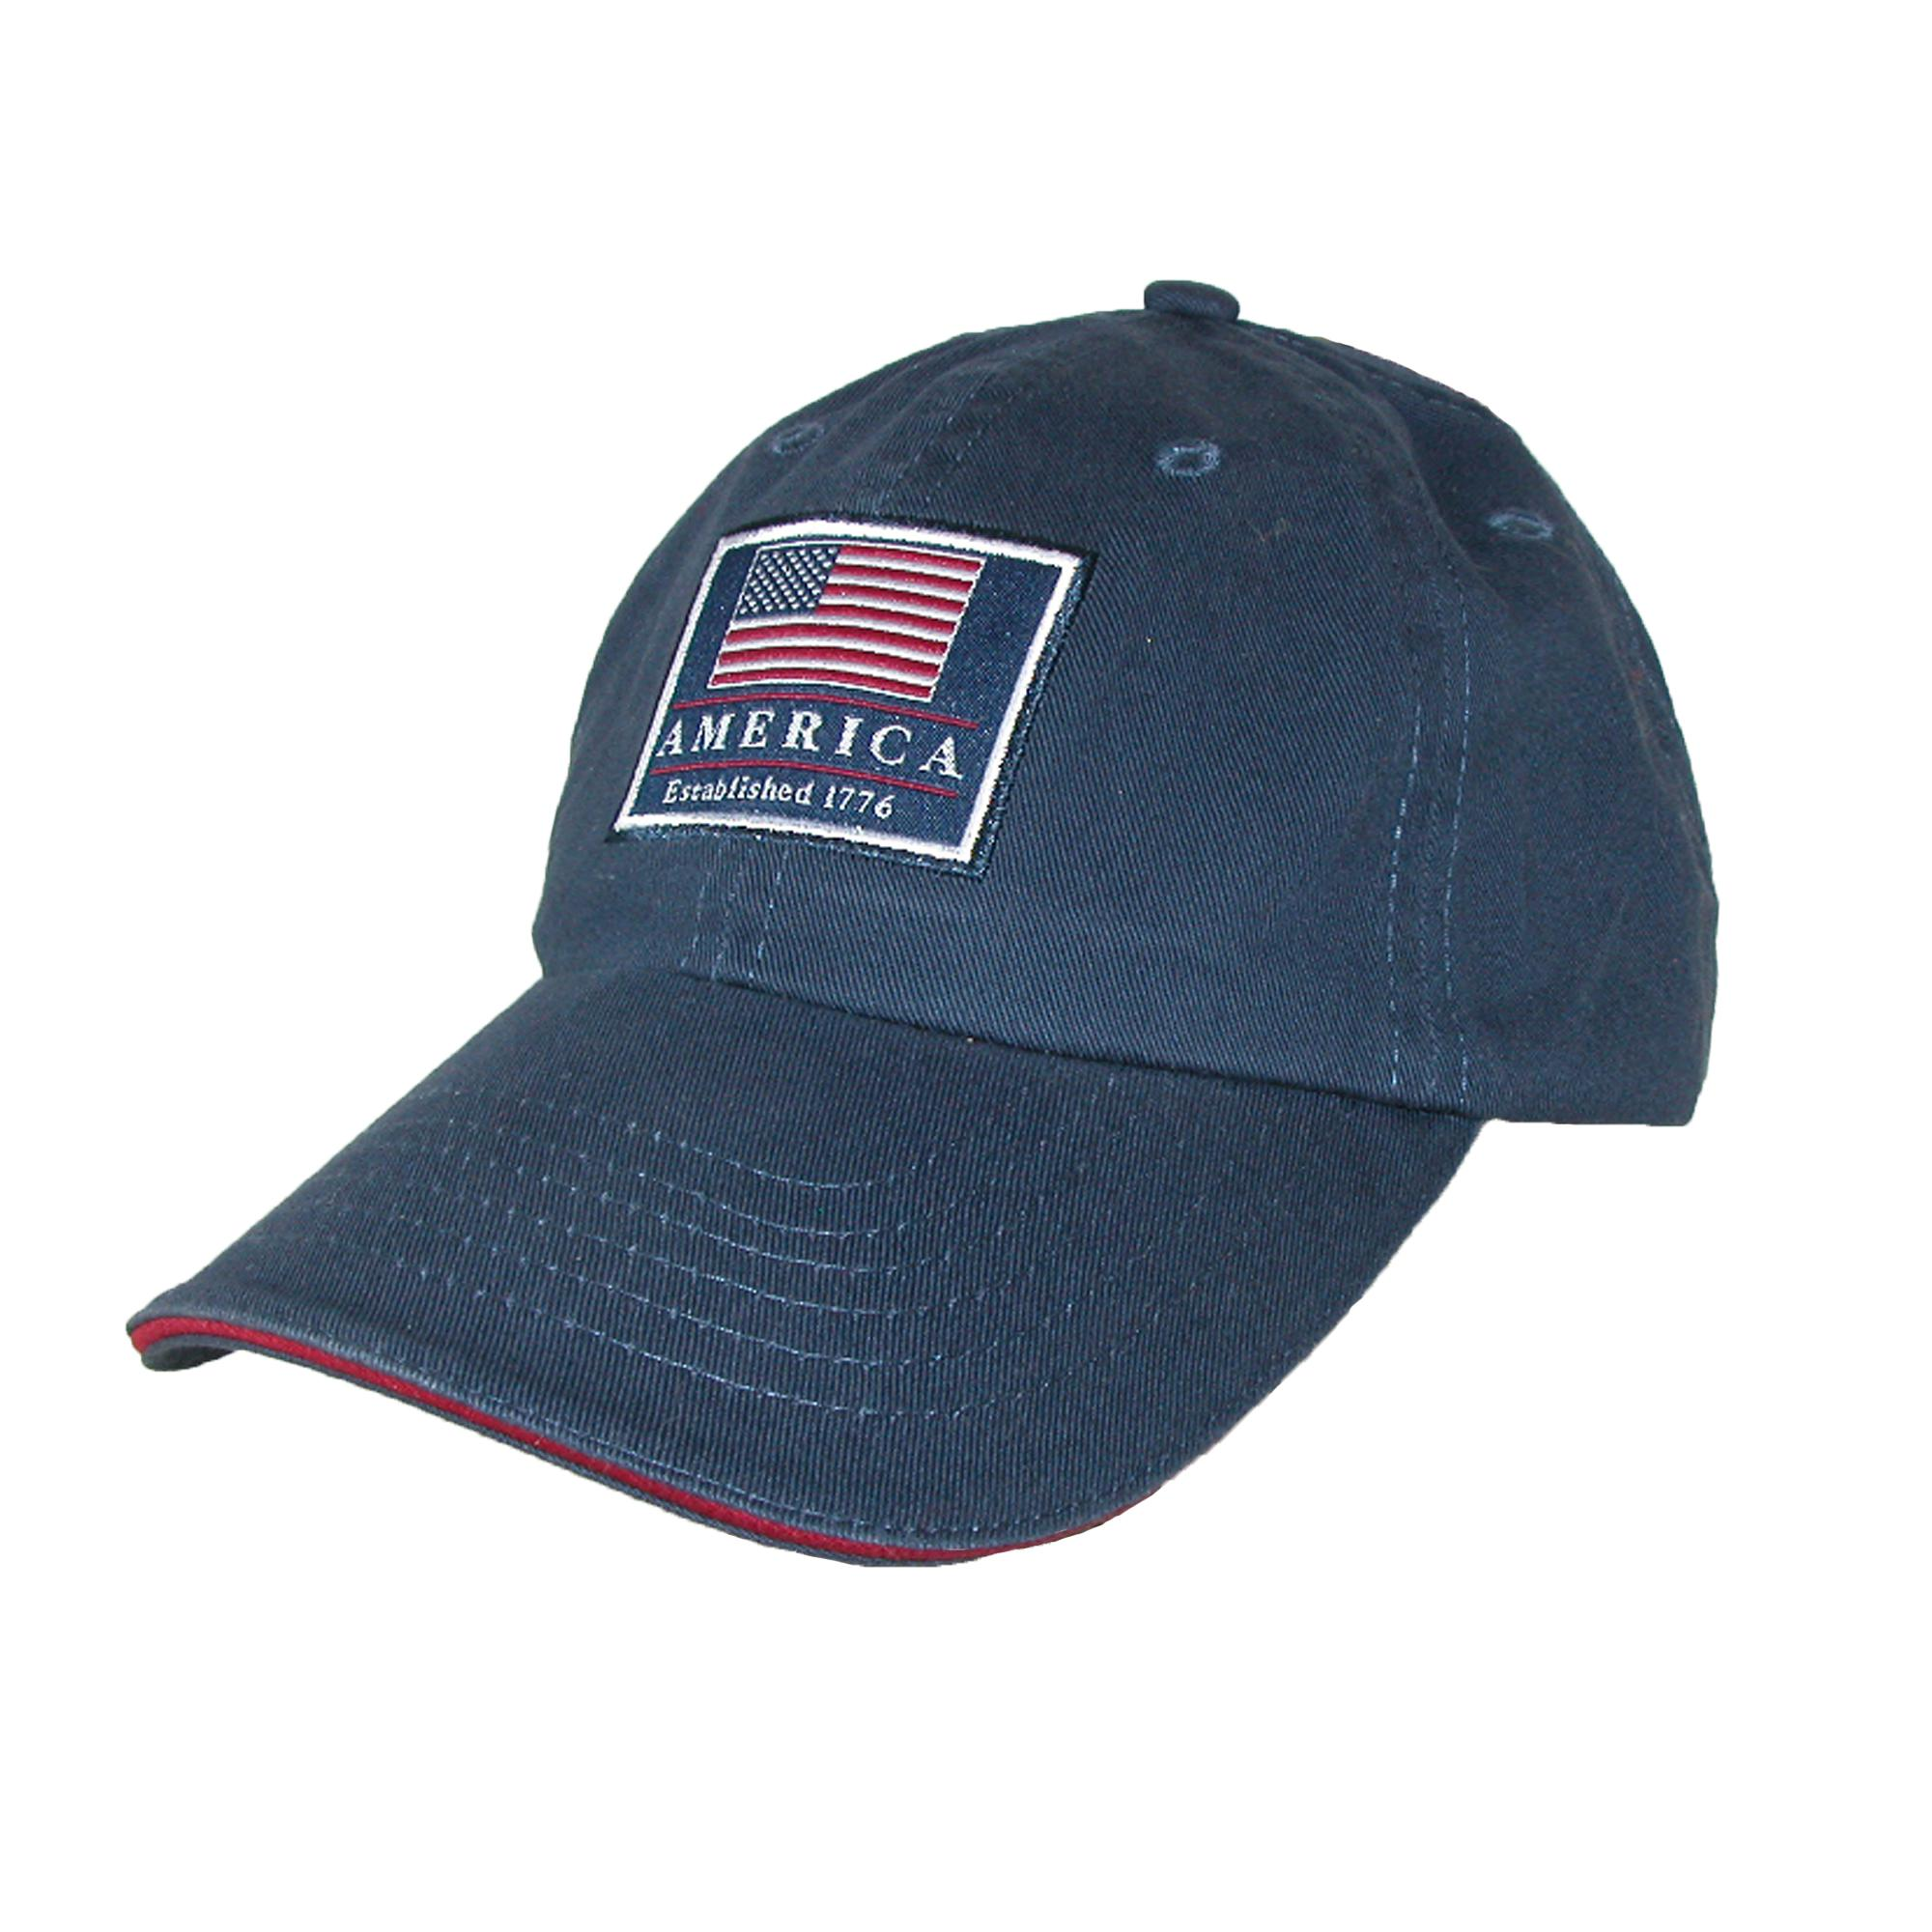 7c8e6426295 Details about New Dorfman Pacific Cotton Classic American Flag USA Baseball  Cap